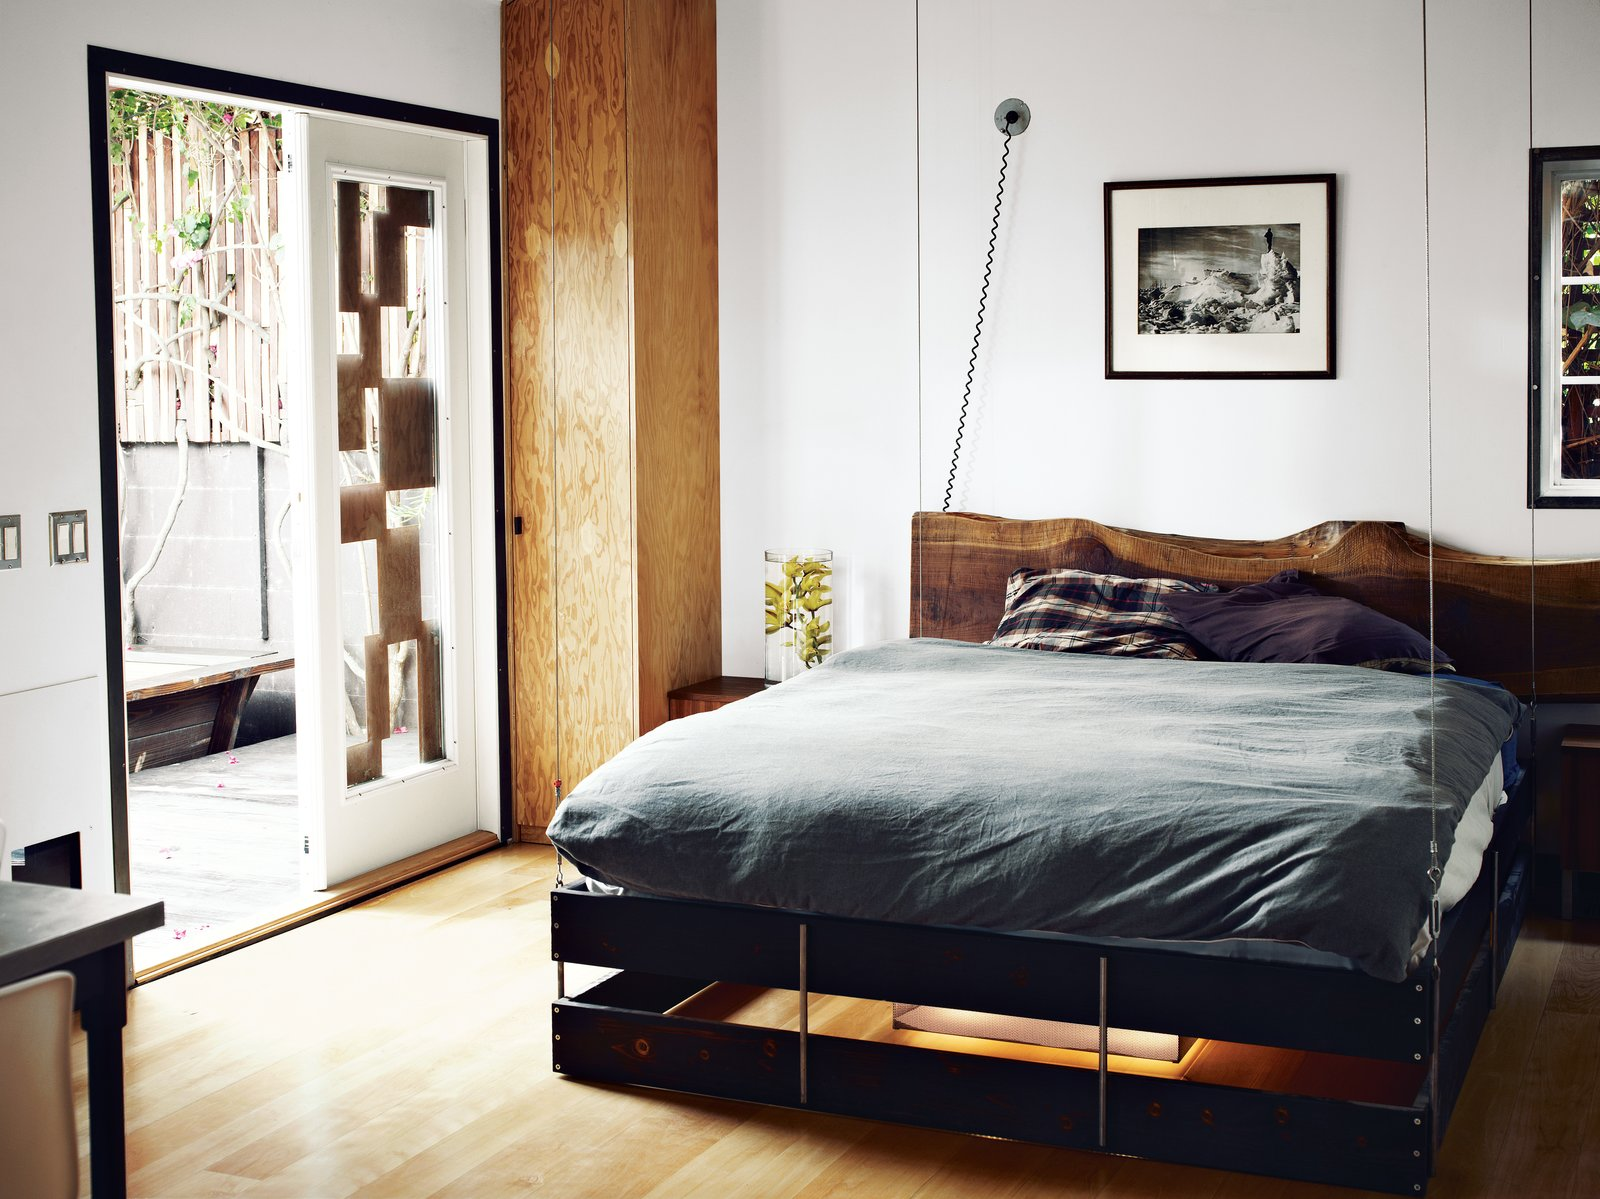 Bedroom, Bed, and Medium Hardwood Floor The bed was designed to hang from the ceiling and can be hoisted up and pulled down as needed.  Bedrooms by Dwell from The Tiny Hollywood Home of Mad Men's Vincent Kartheiser